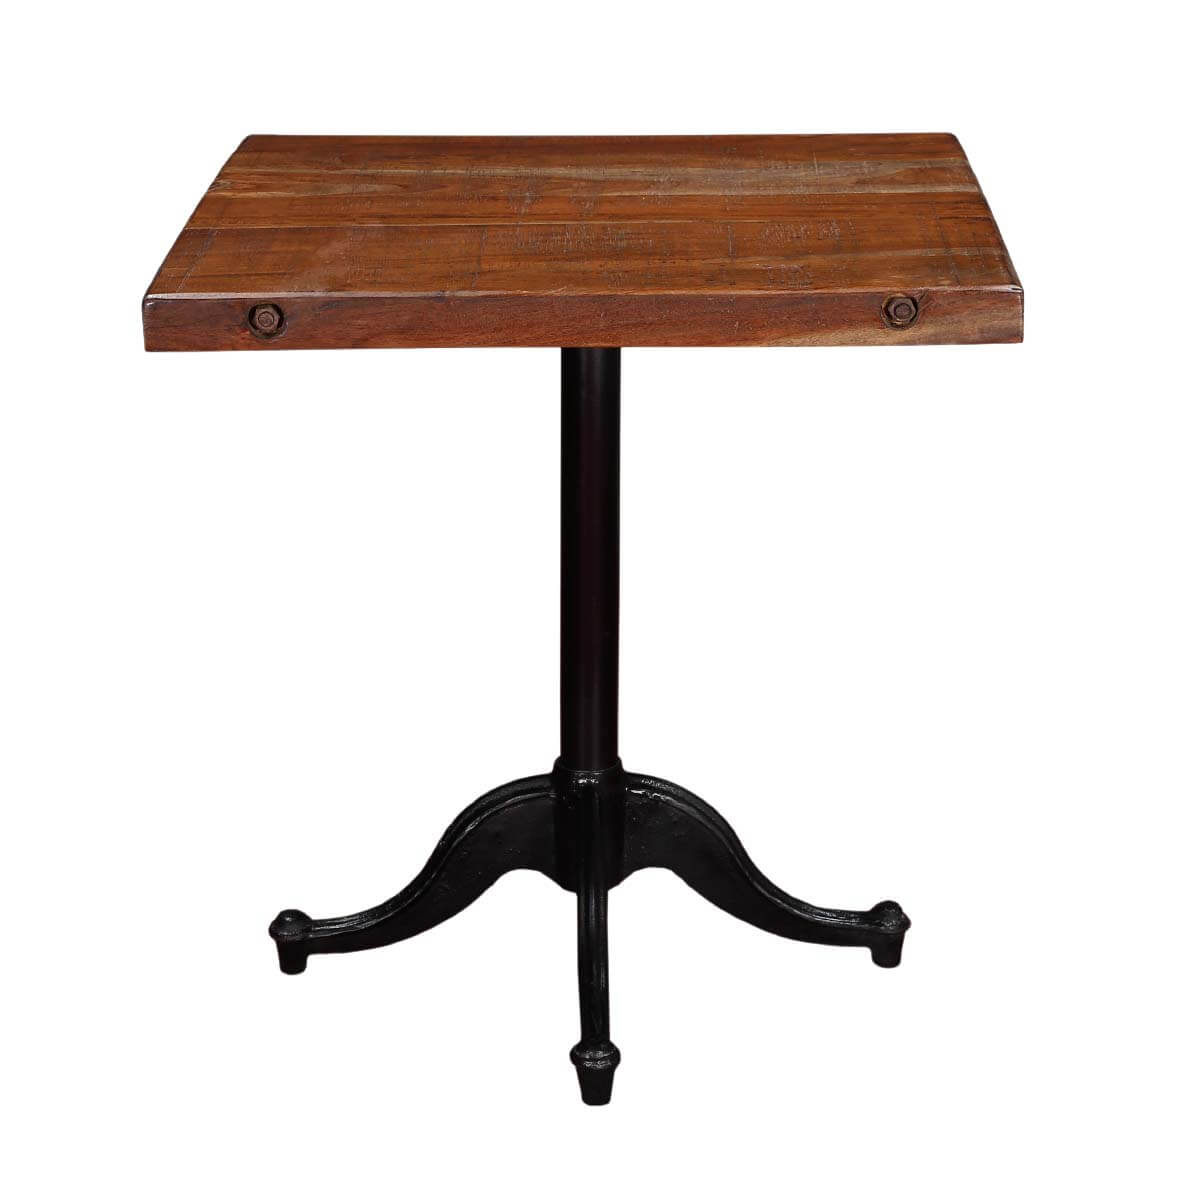 Modern Caf233 21 Square Mango Wood amp Iron Pedestal Table : 82662 from www.sierralivingconcepts.com size 1200 x 1200 jpeg 68kB